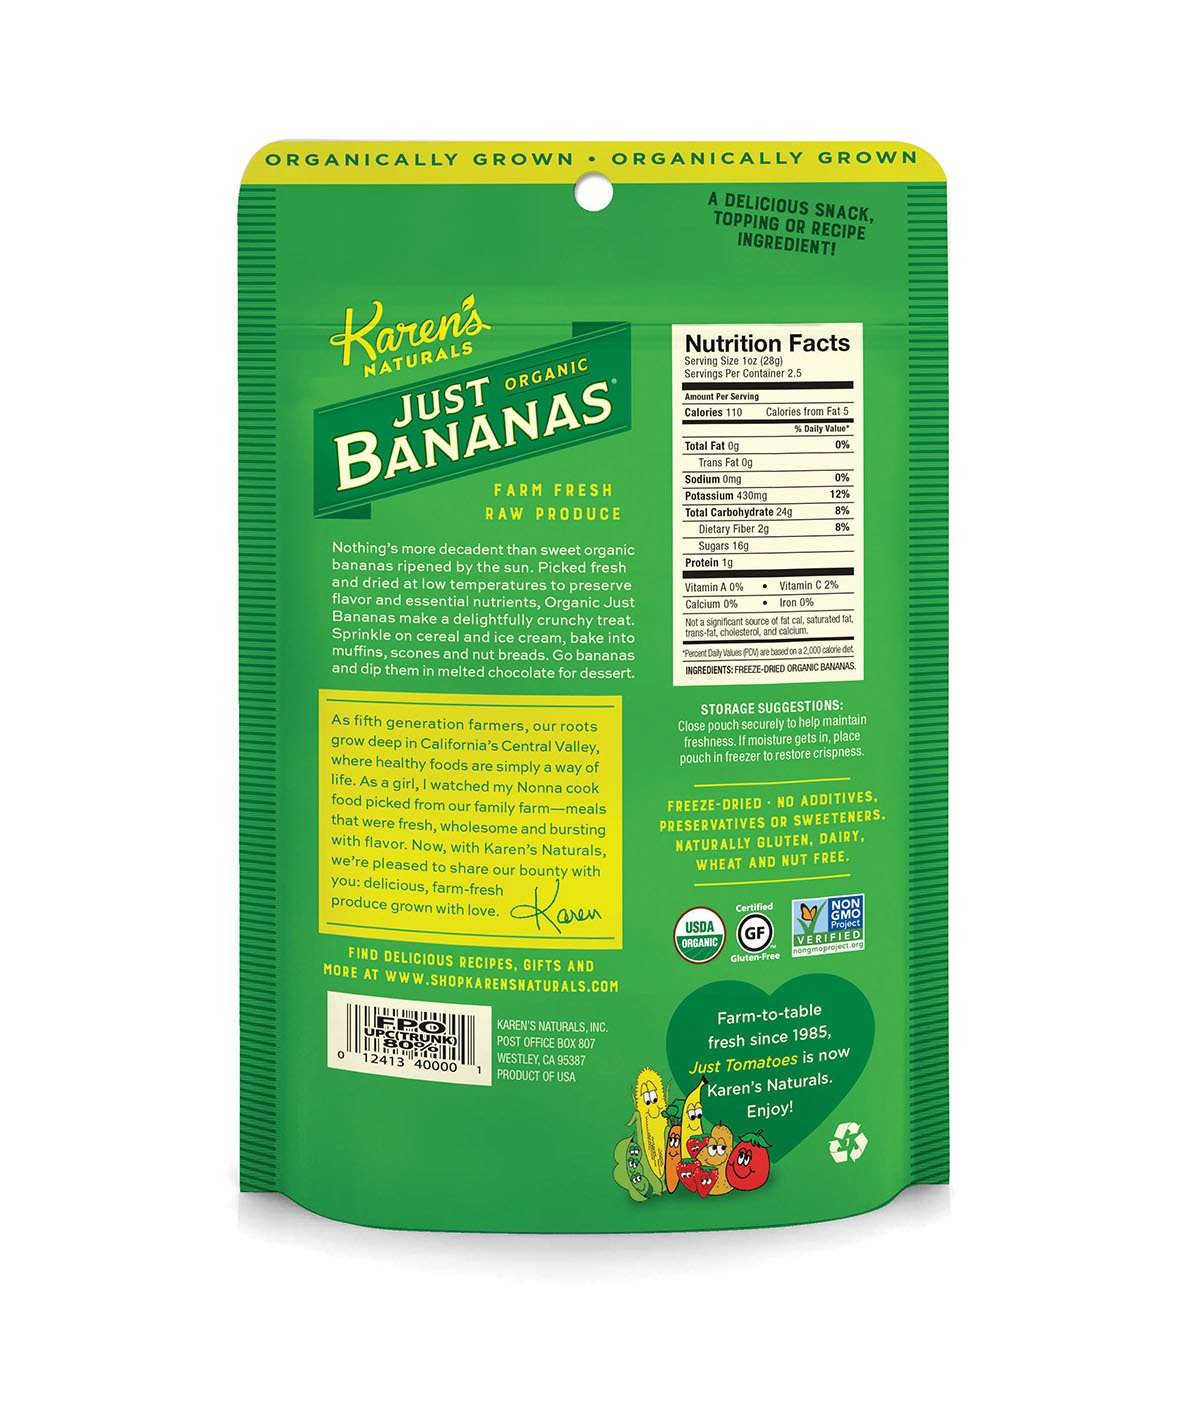 Karens Naturals Organic Just Banana, 2.5 Ounce Pouch (Packaging May Vary) Organic All Natural Freeze-Dried Fruits & Vegetables, No Additives or ...